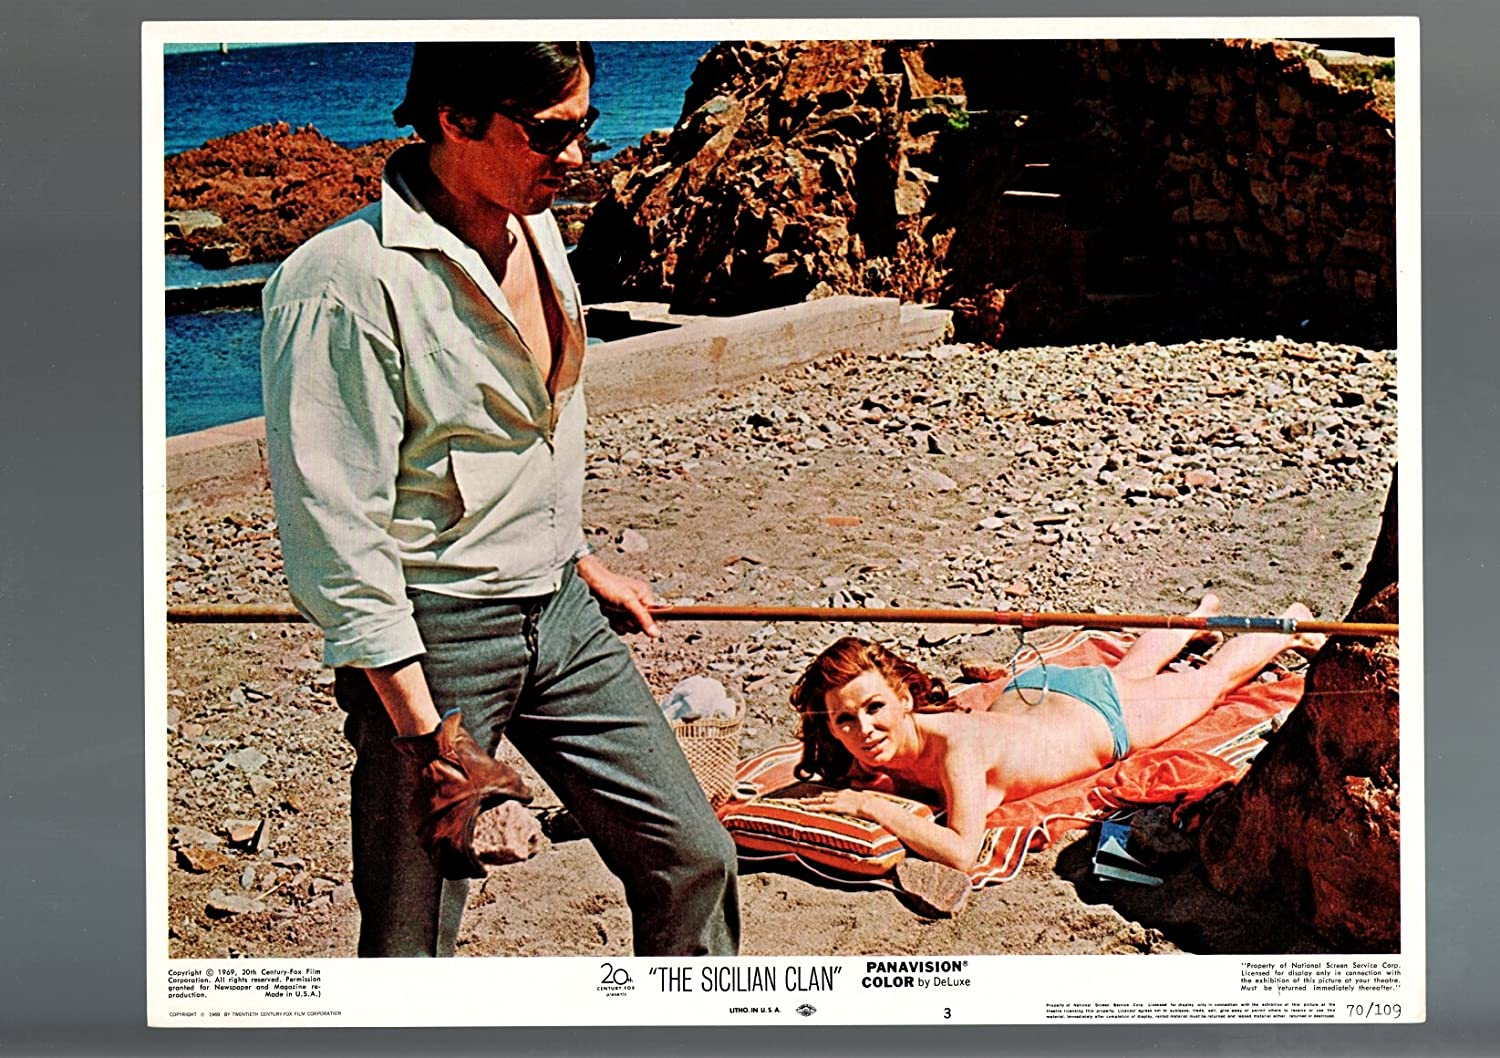 MOVIE POSTER: THE SICILIAN Dealing Fashionable full price reduction D CARD-VF-DRAMA-ALAIN CLAN-1970-LOBBY